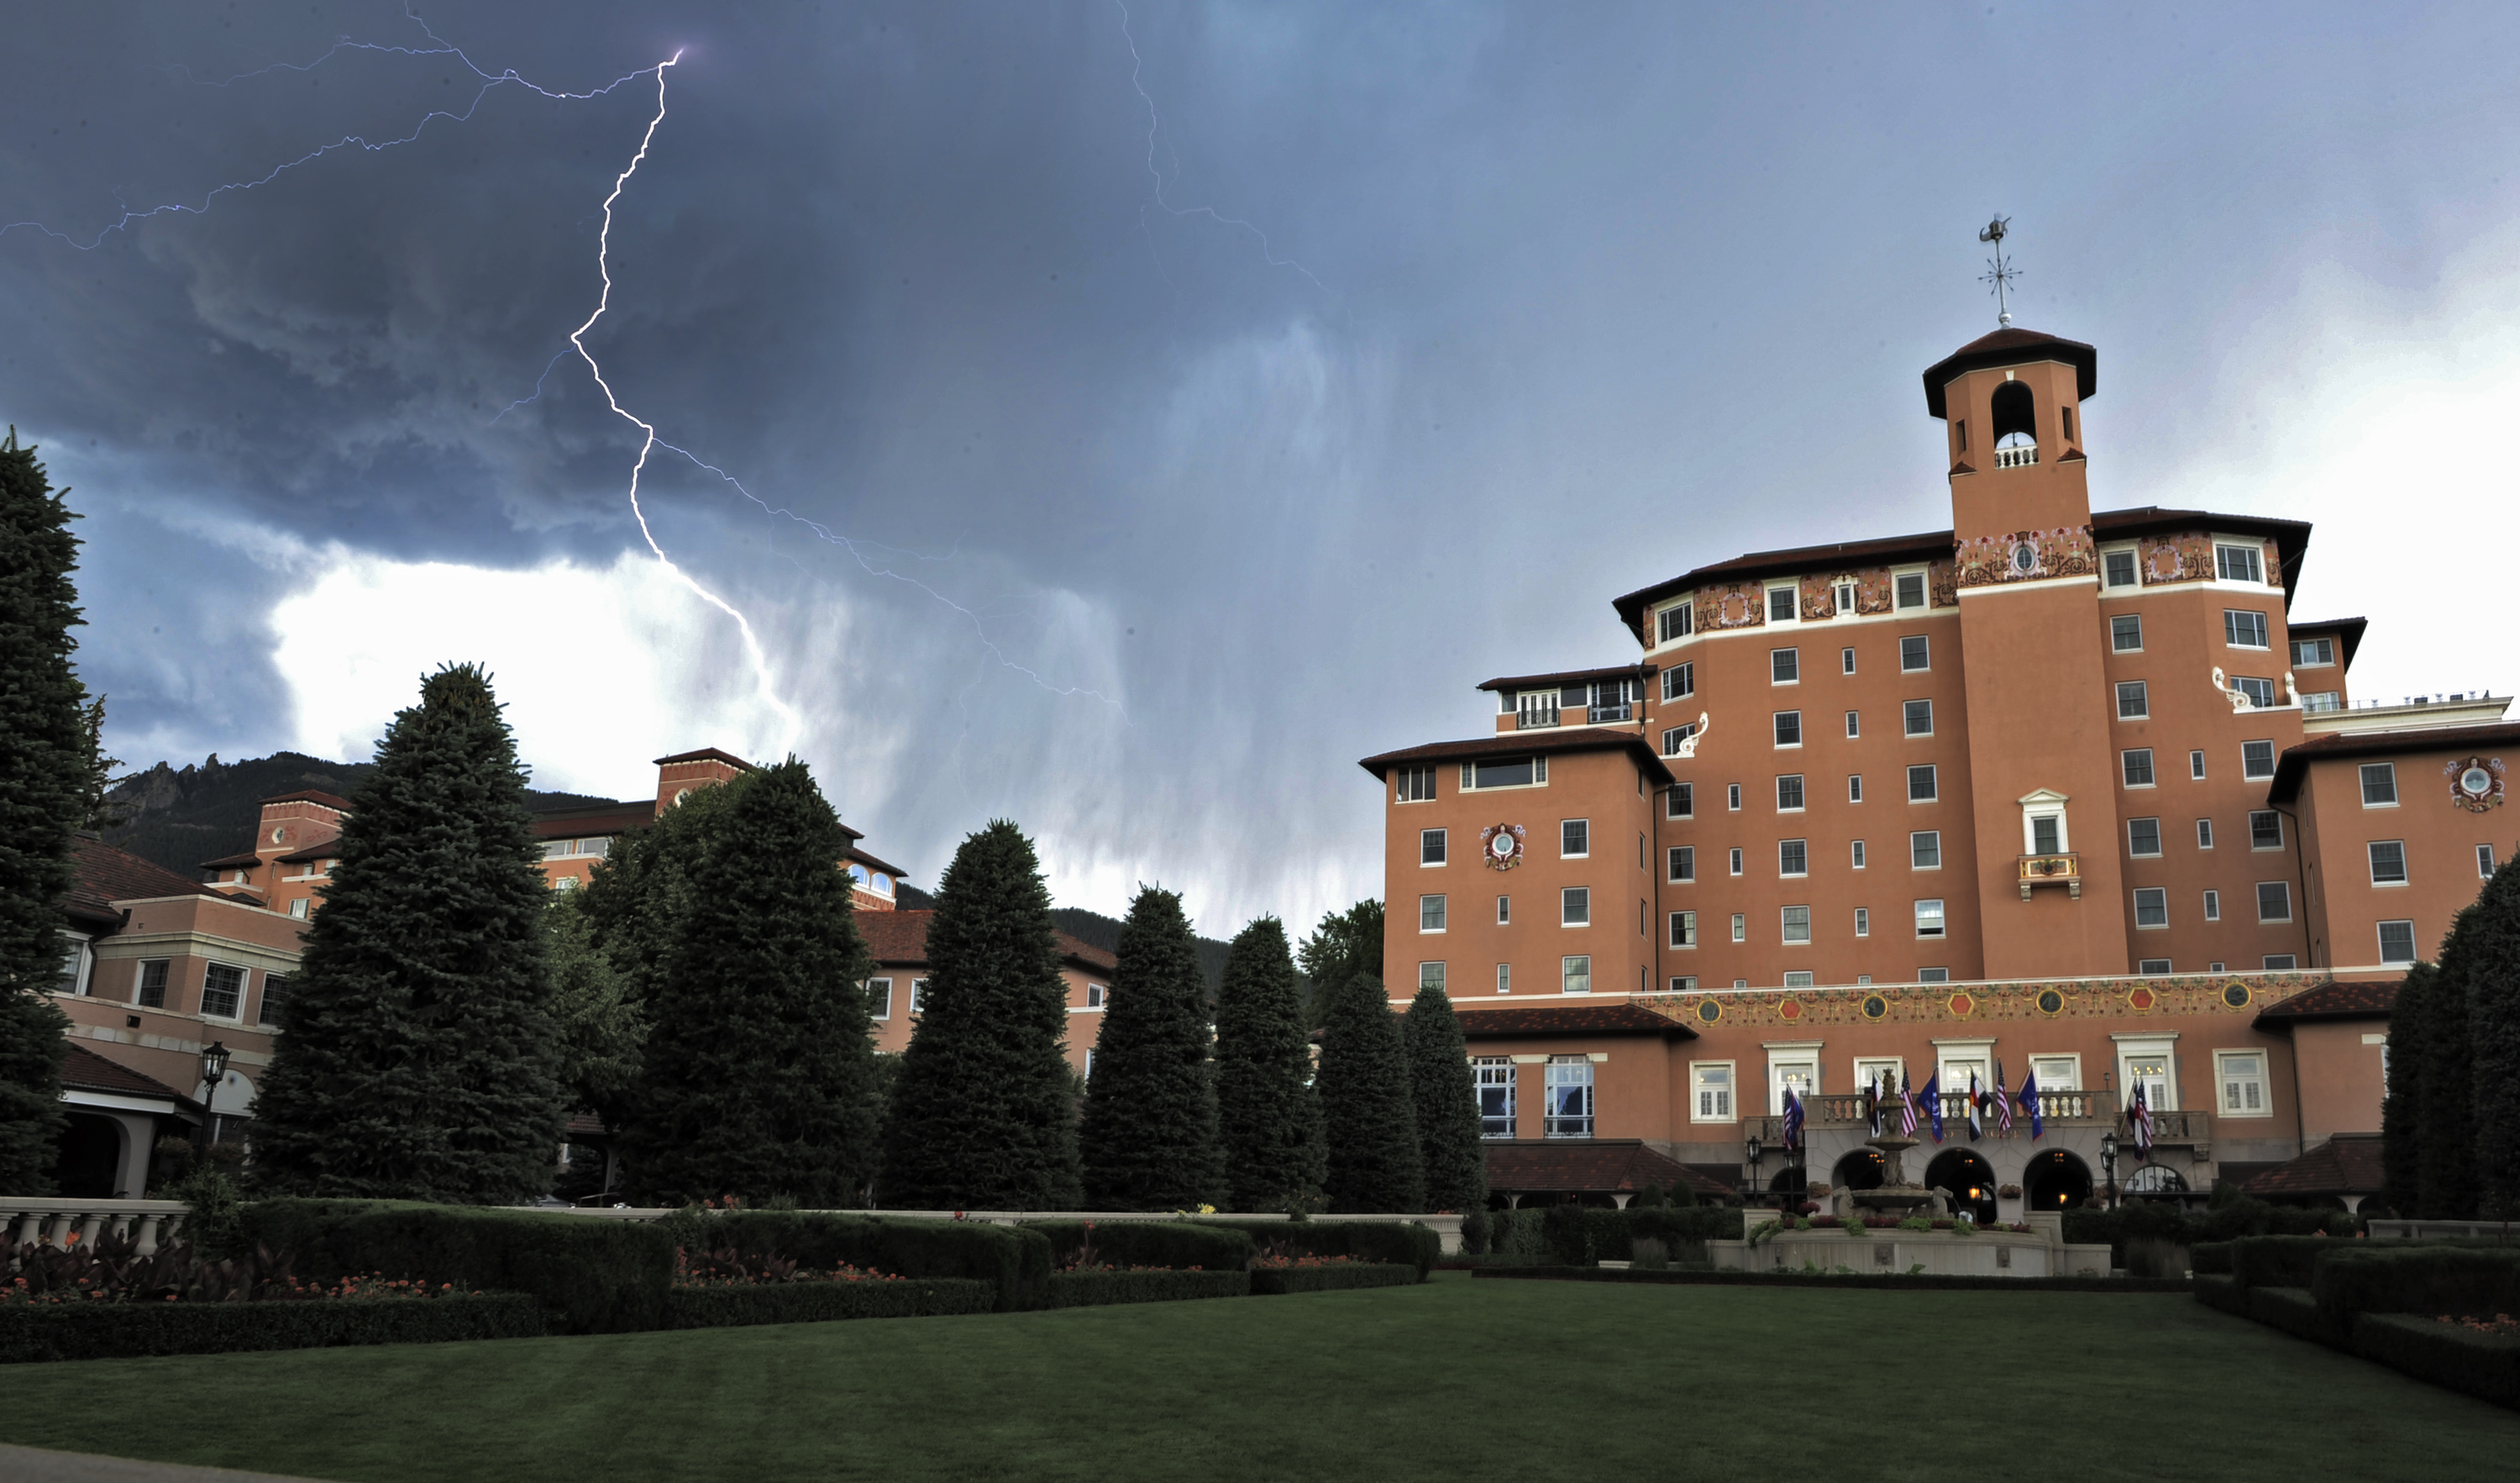 <p>Lightning flashes in the sky over the Broadmoor Hotel during the third round of the Women's U.S. Open golf tournamenton July 9, 2011, in Colorado Springs, Colo.</p>